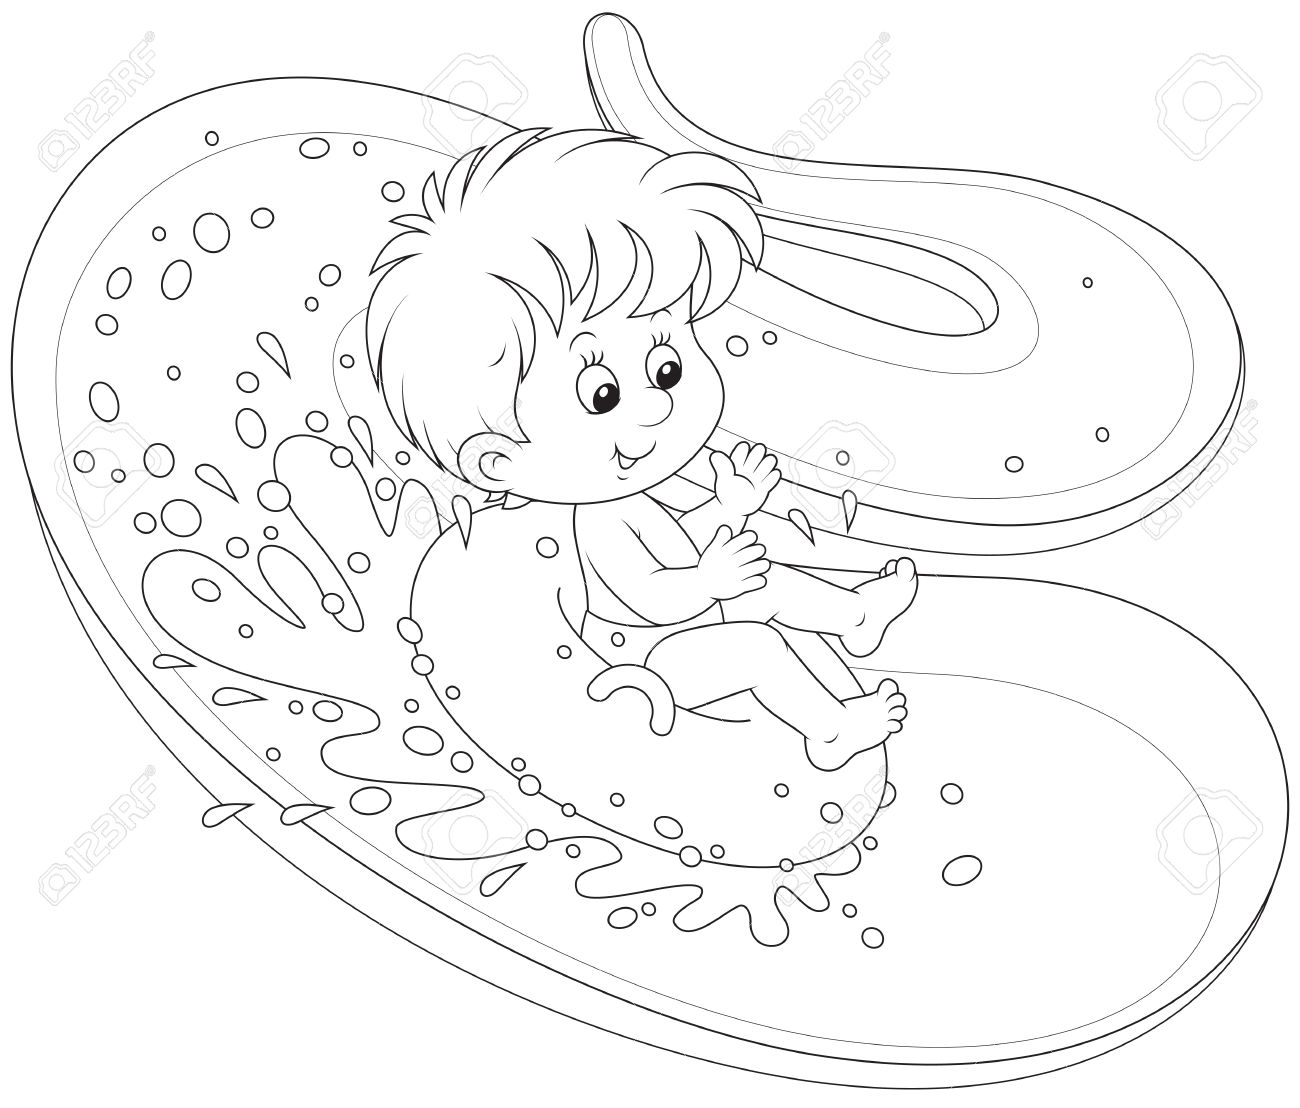 Water Slide Clipart Black And White